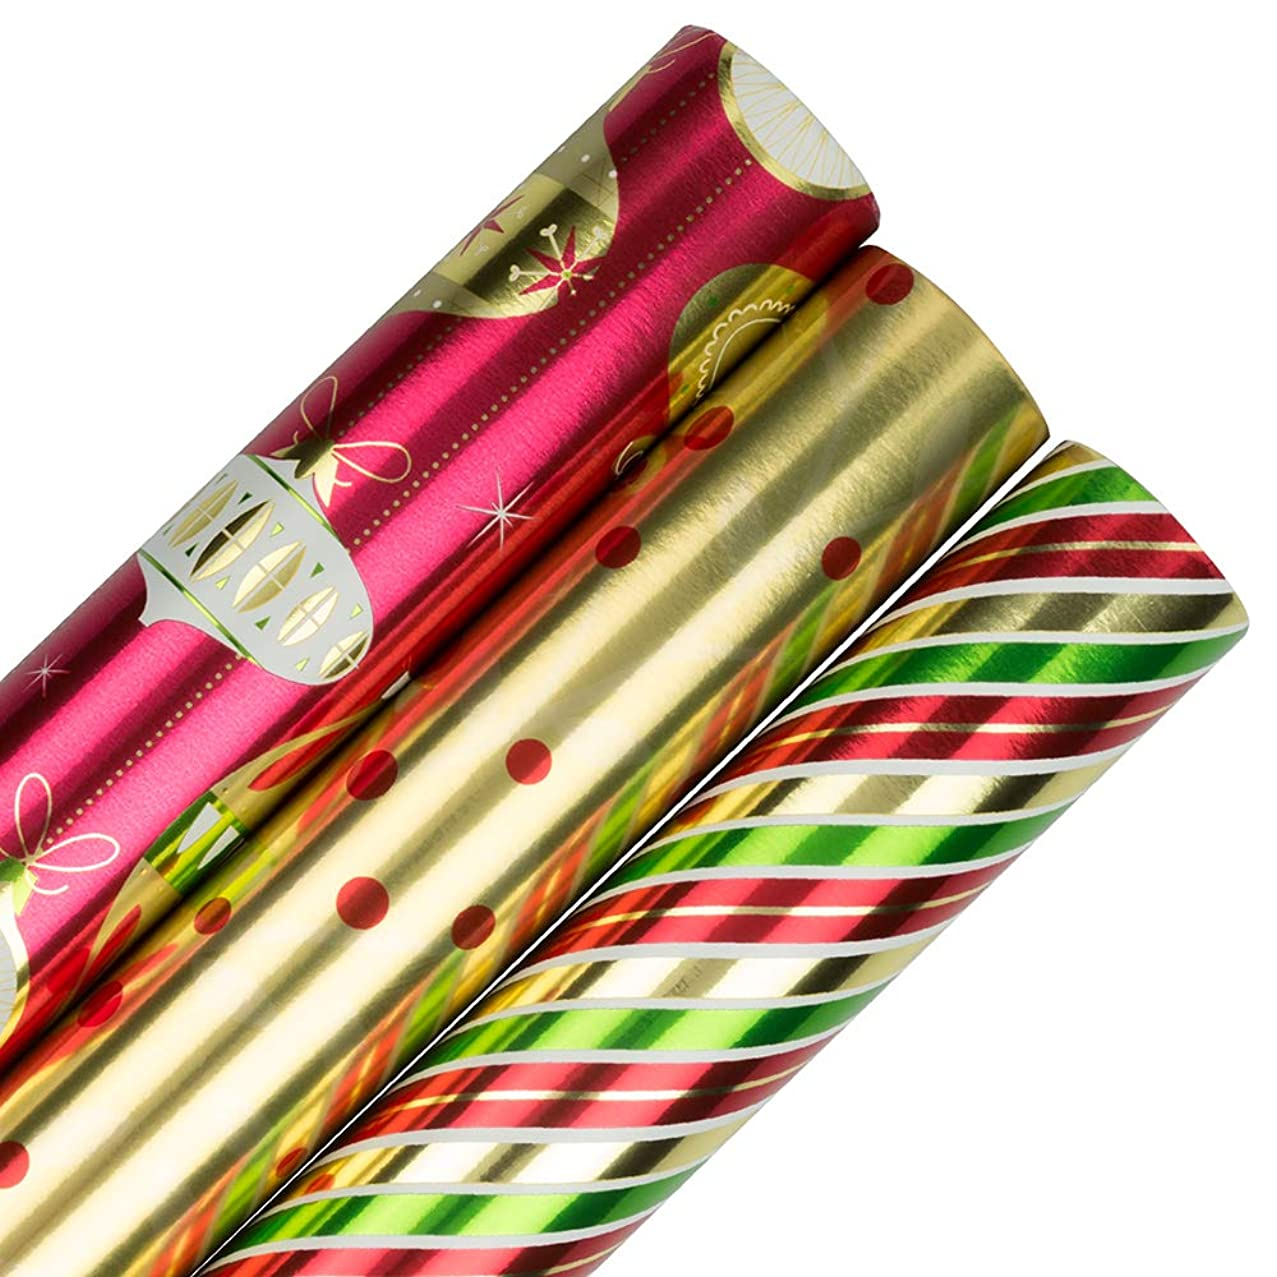 JAM PAPER Assorted Gift Wrap - Christmas Foil Wrapping Paper - 75 Sq Ft Total - Christmastime Set - 3 Rolls/Pack